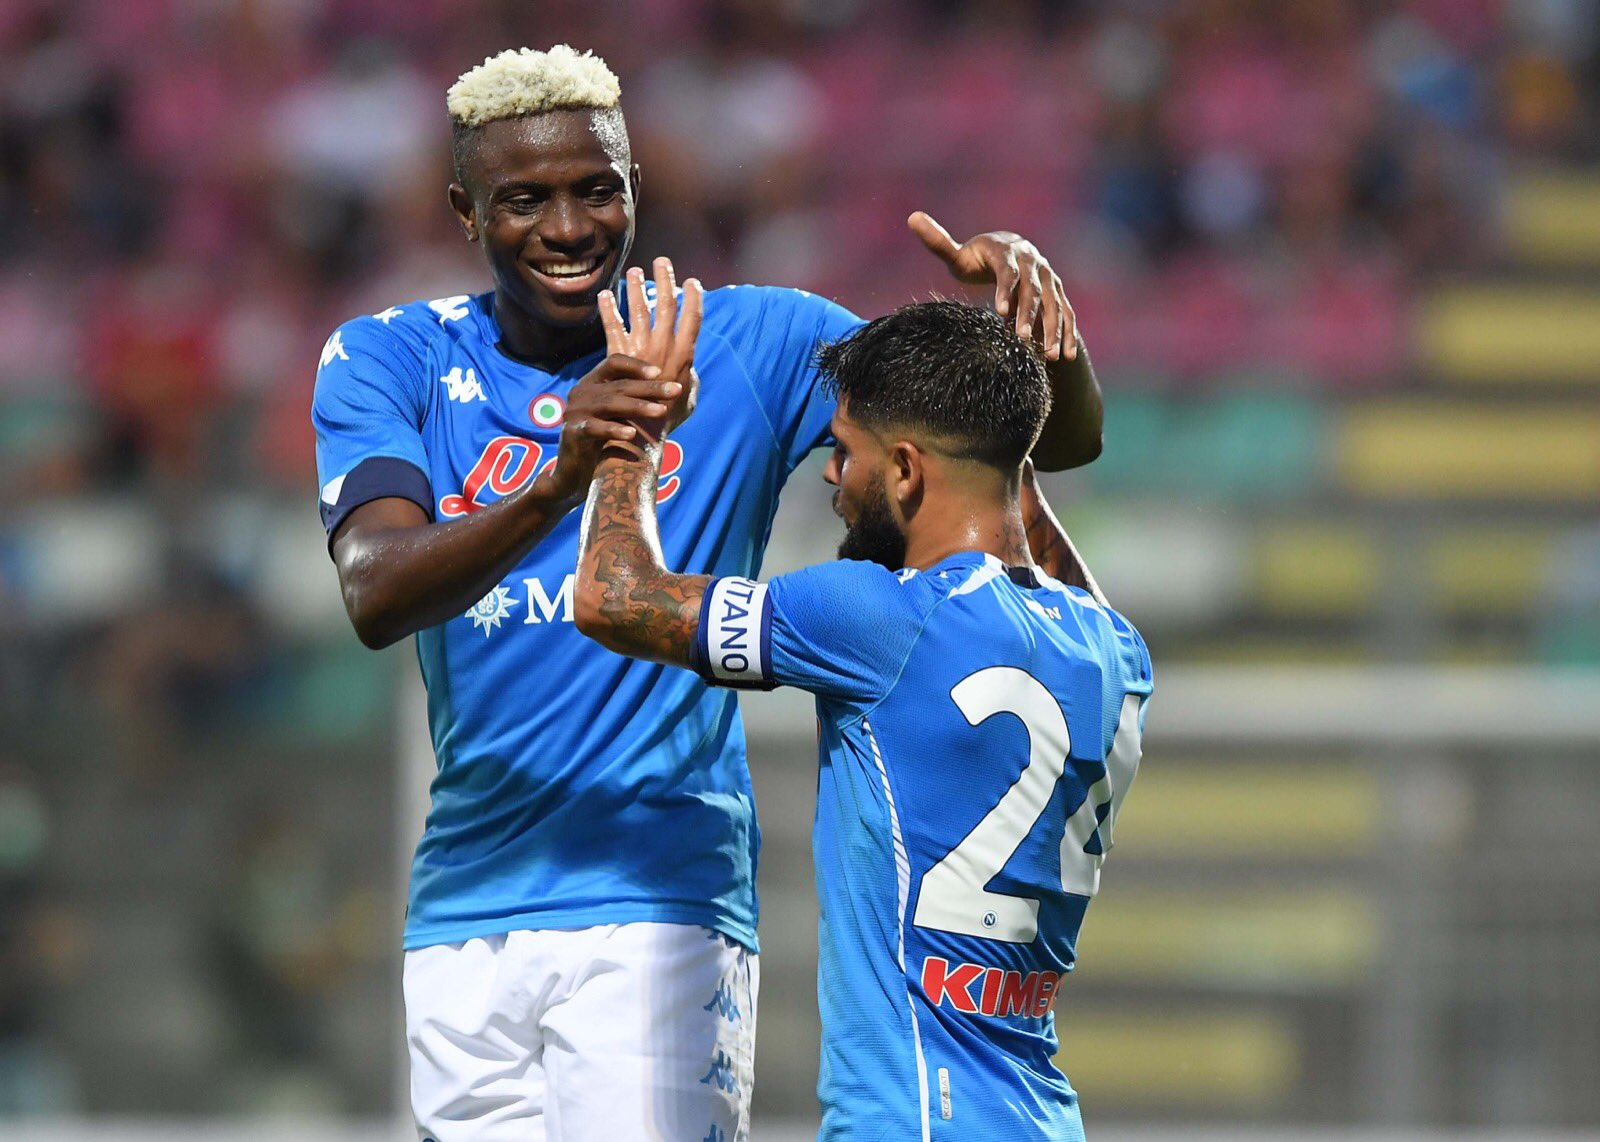 Serie A: Osimhen Comes Out Top Over Ronaldo, Helps Napoli Dent Juve's Title Hope